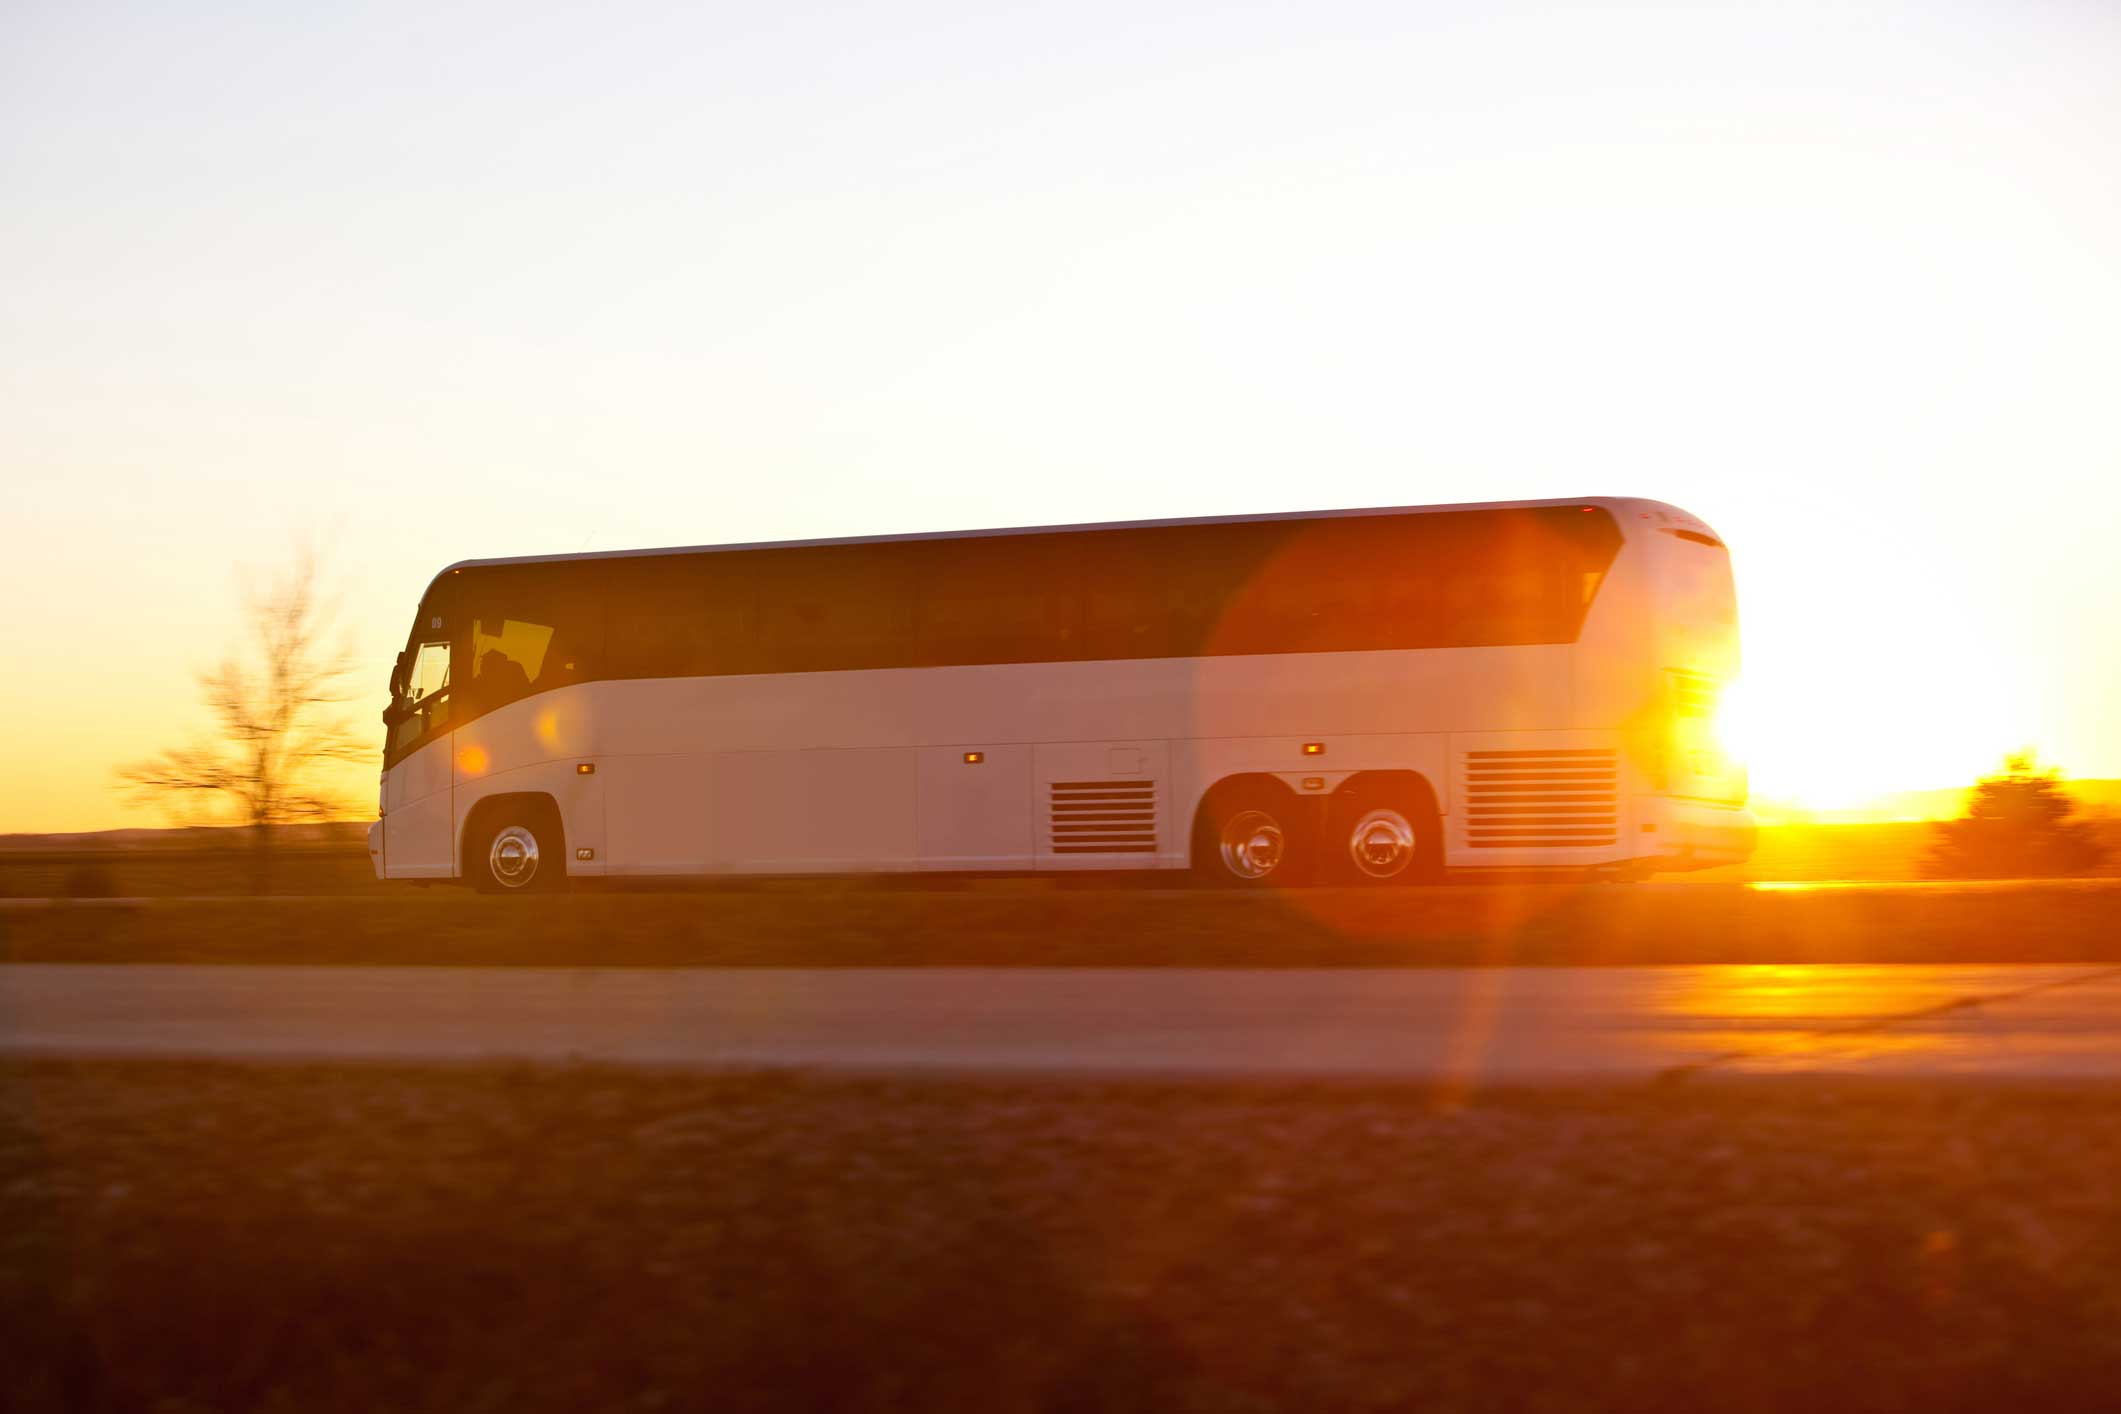 Large bus rental is a service for large groups in Cleveland, Ohio